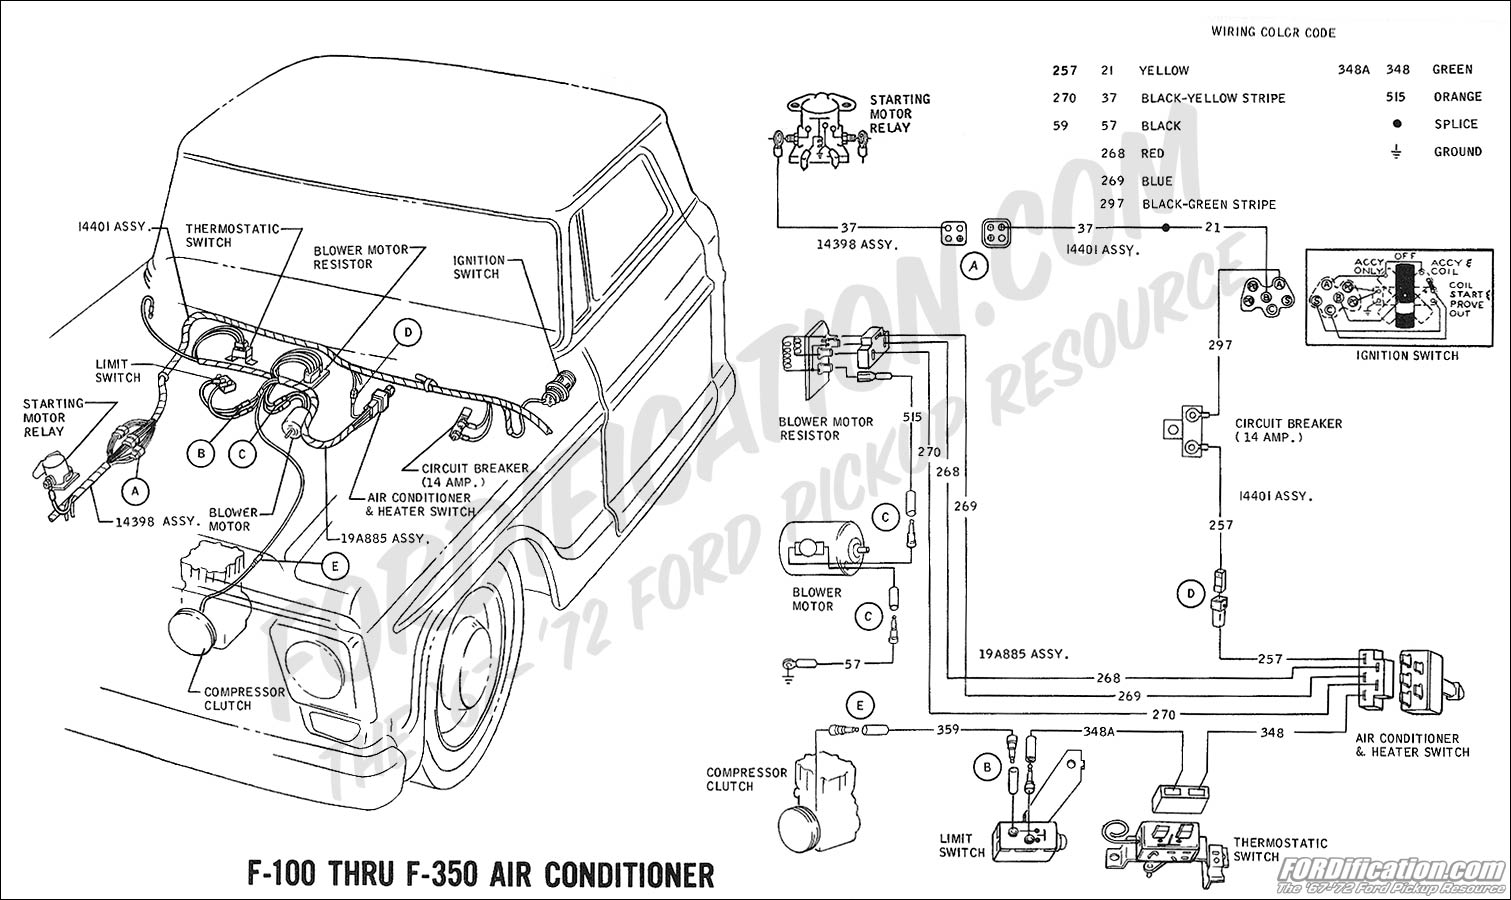 1989 Ford Ranger Ac Wiring Diagram Just Wiring Data Toyota Wiring Diagrams  Color Code 1988 Toyota Pickup Wiring Diagram Air Conditioning